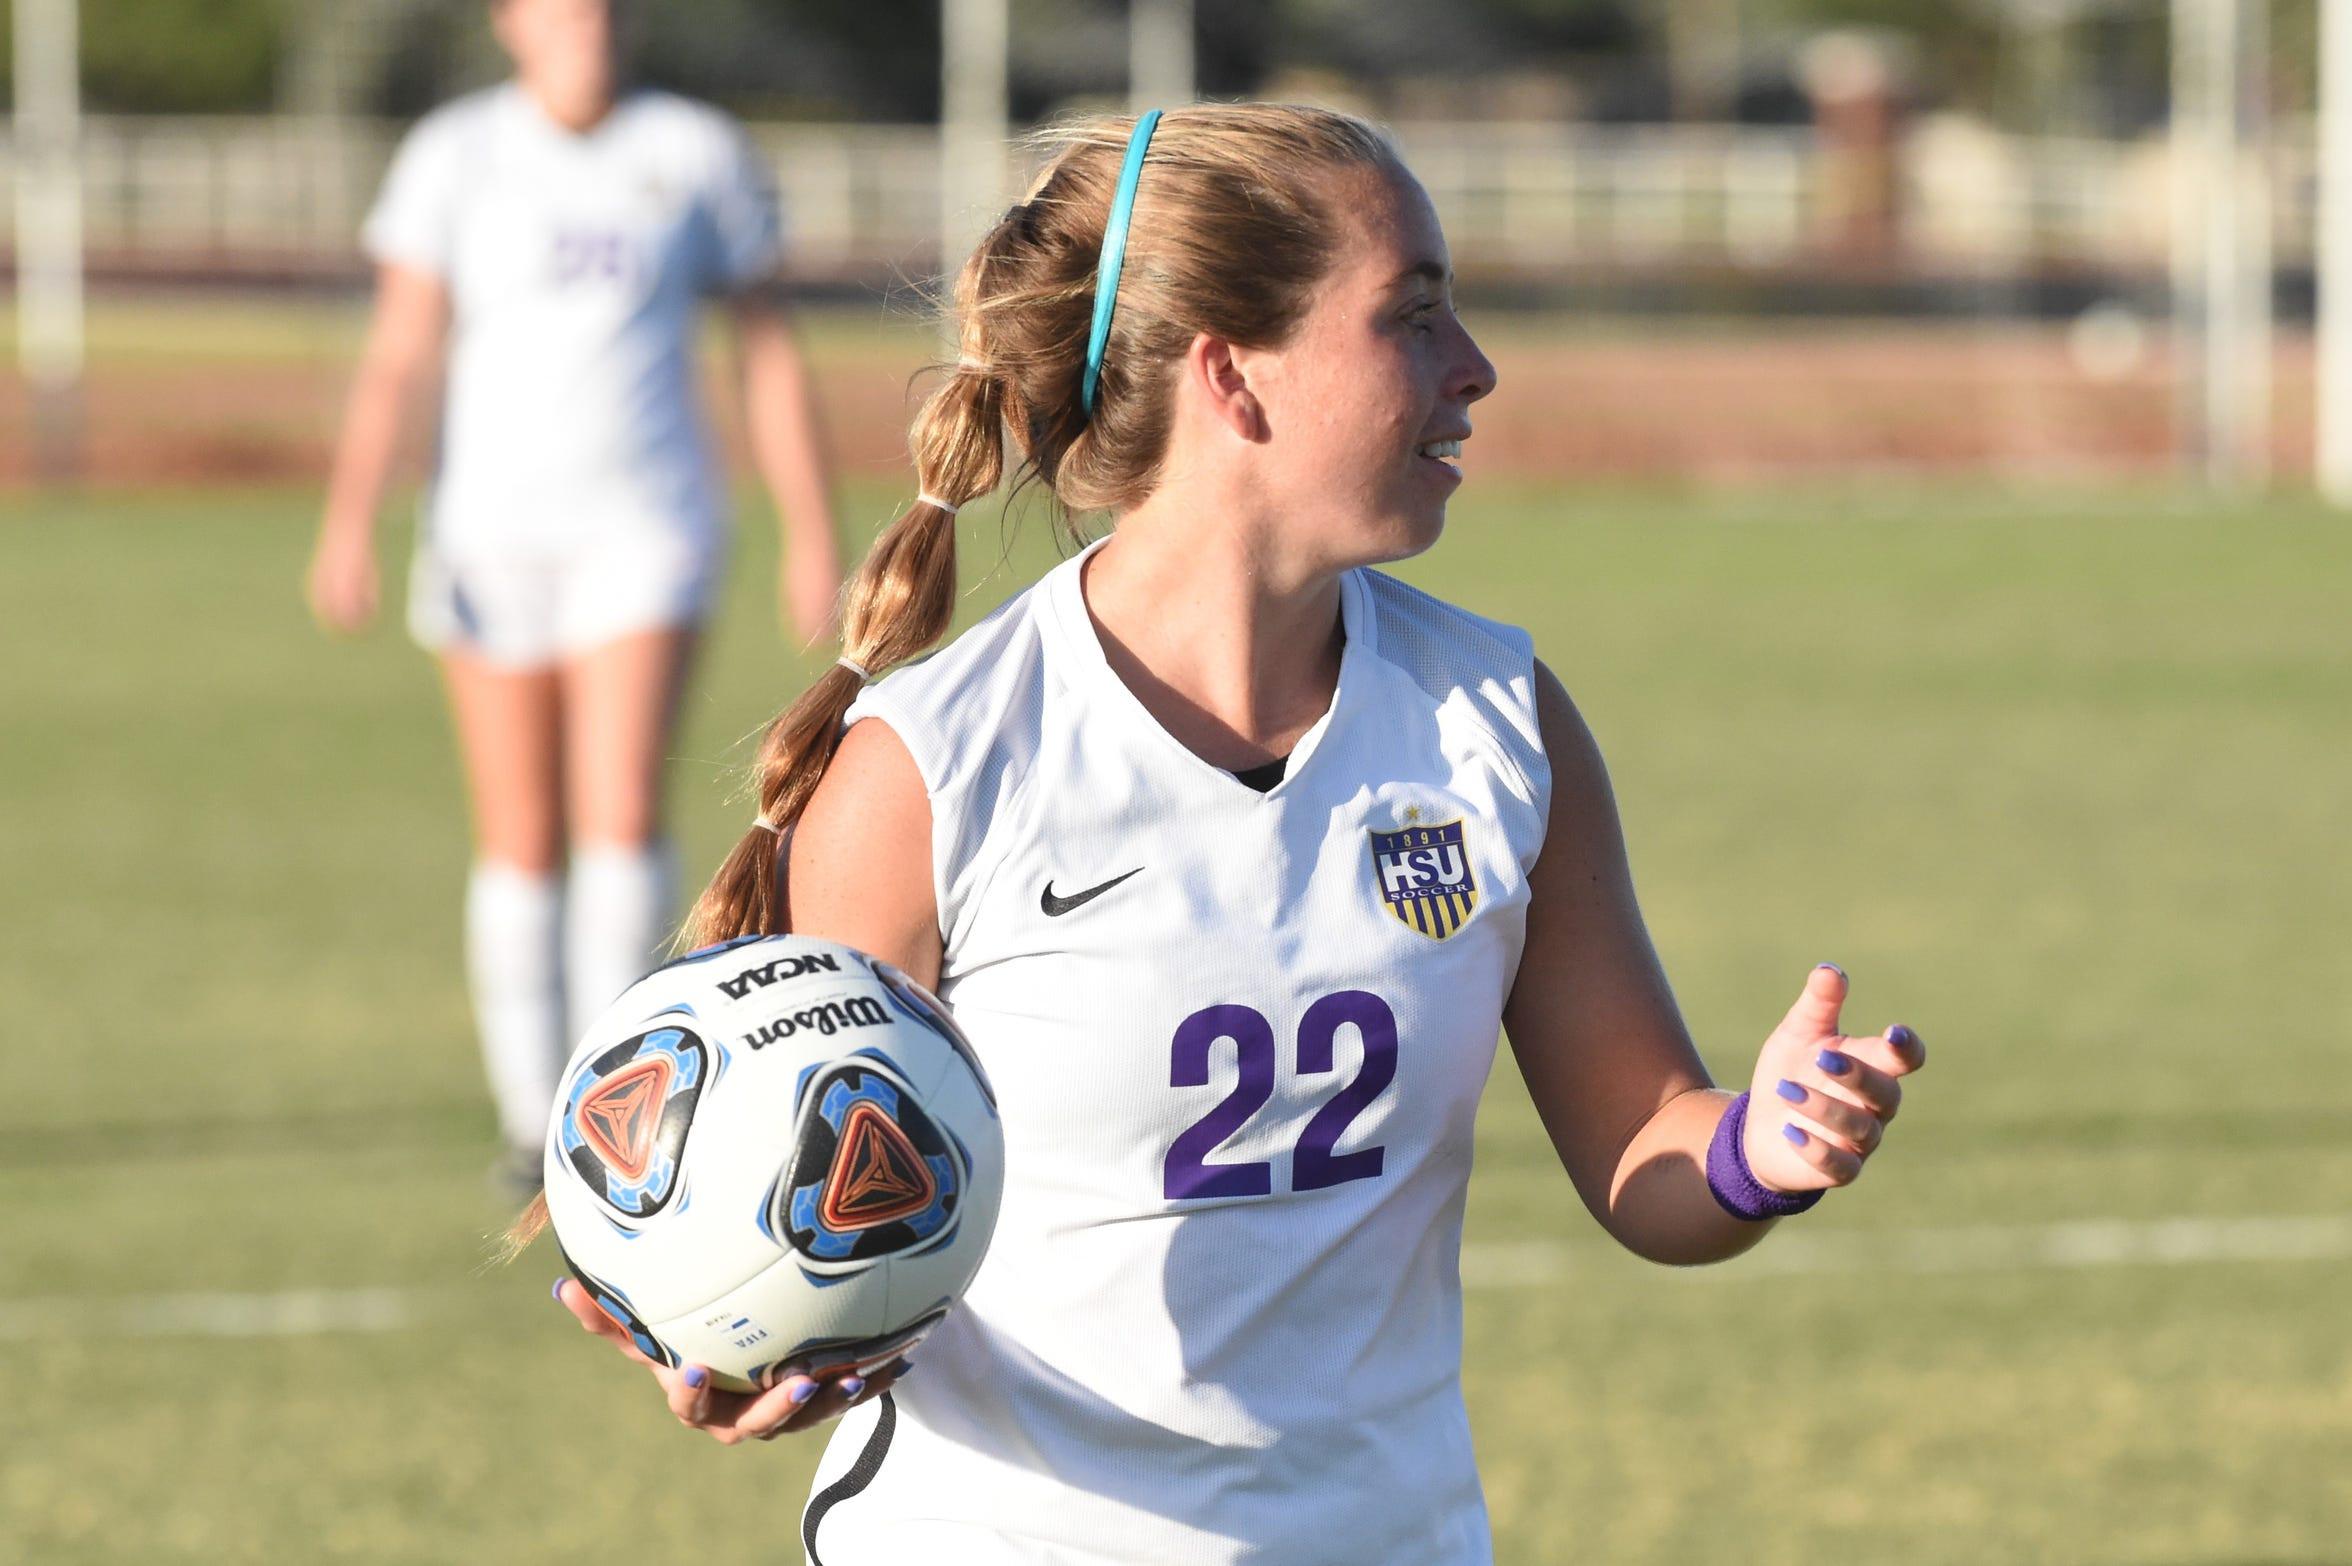 HSU's Kendell Groom (22) looks for an open player before throwing the ball in against Louisiana College at the HSU Soccer Complex on Thursday, Sept. 26, 2019. The Cowgirls won 10-0.